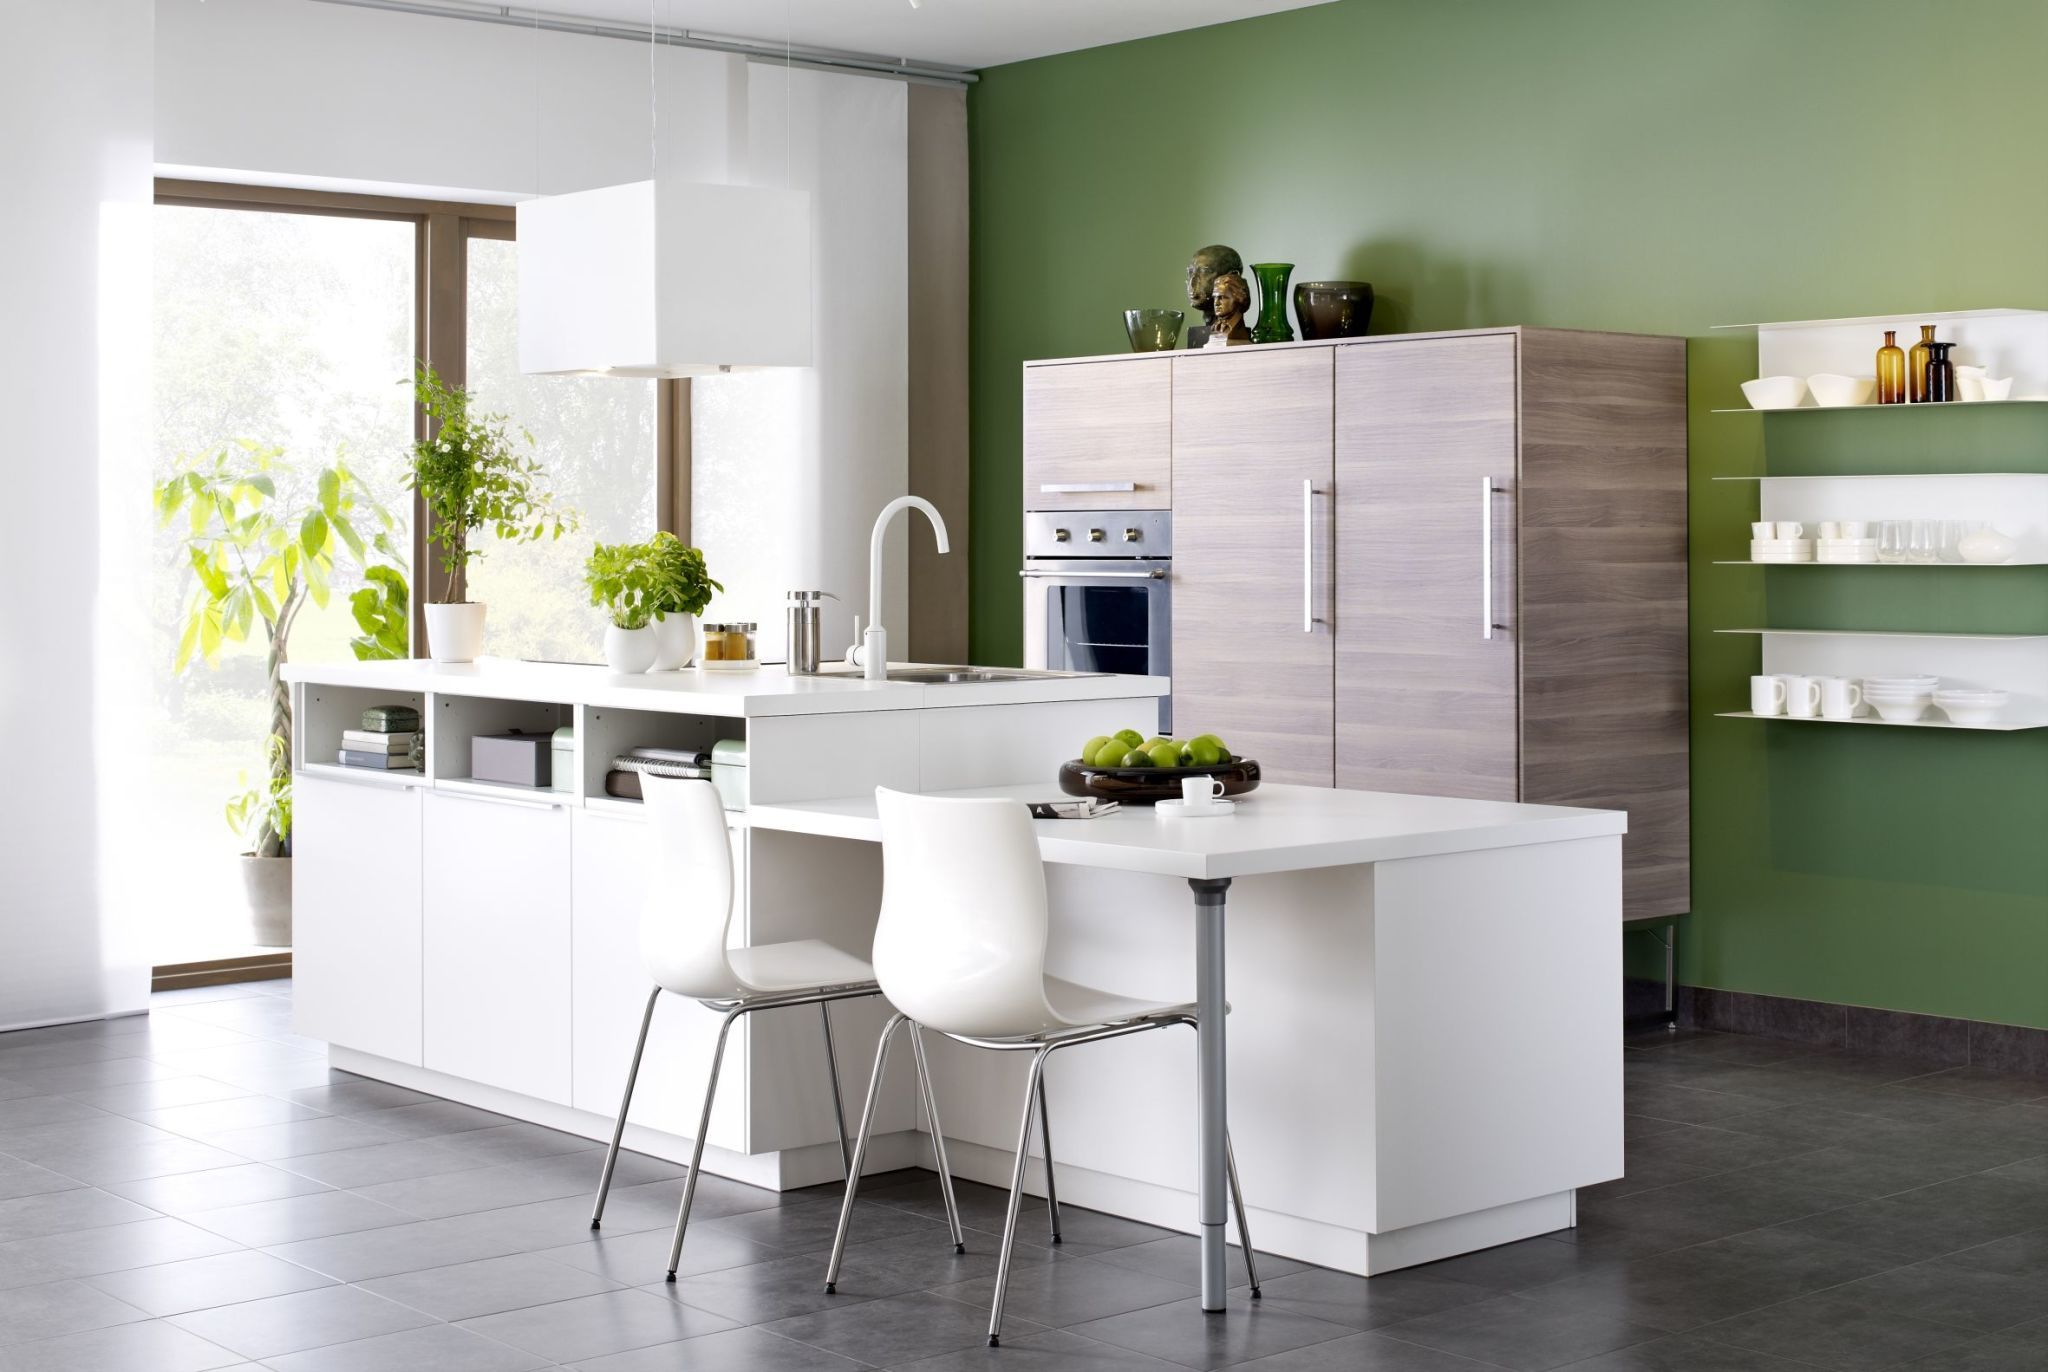 Ikea kitchen island unit & Why you should consider installing a kitchen island